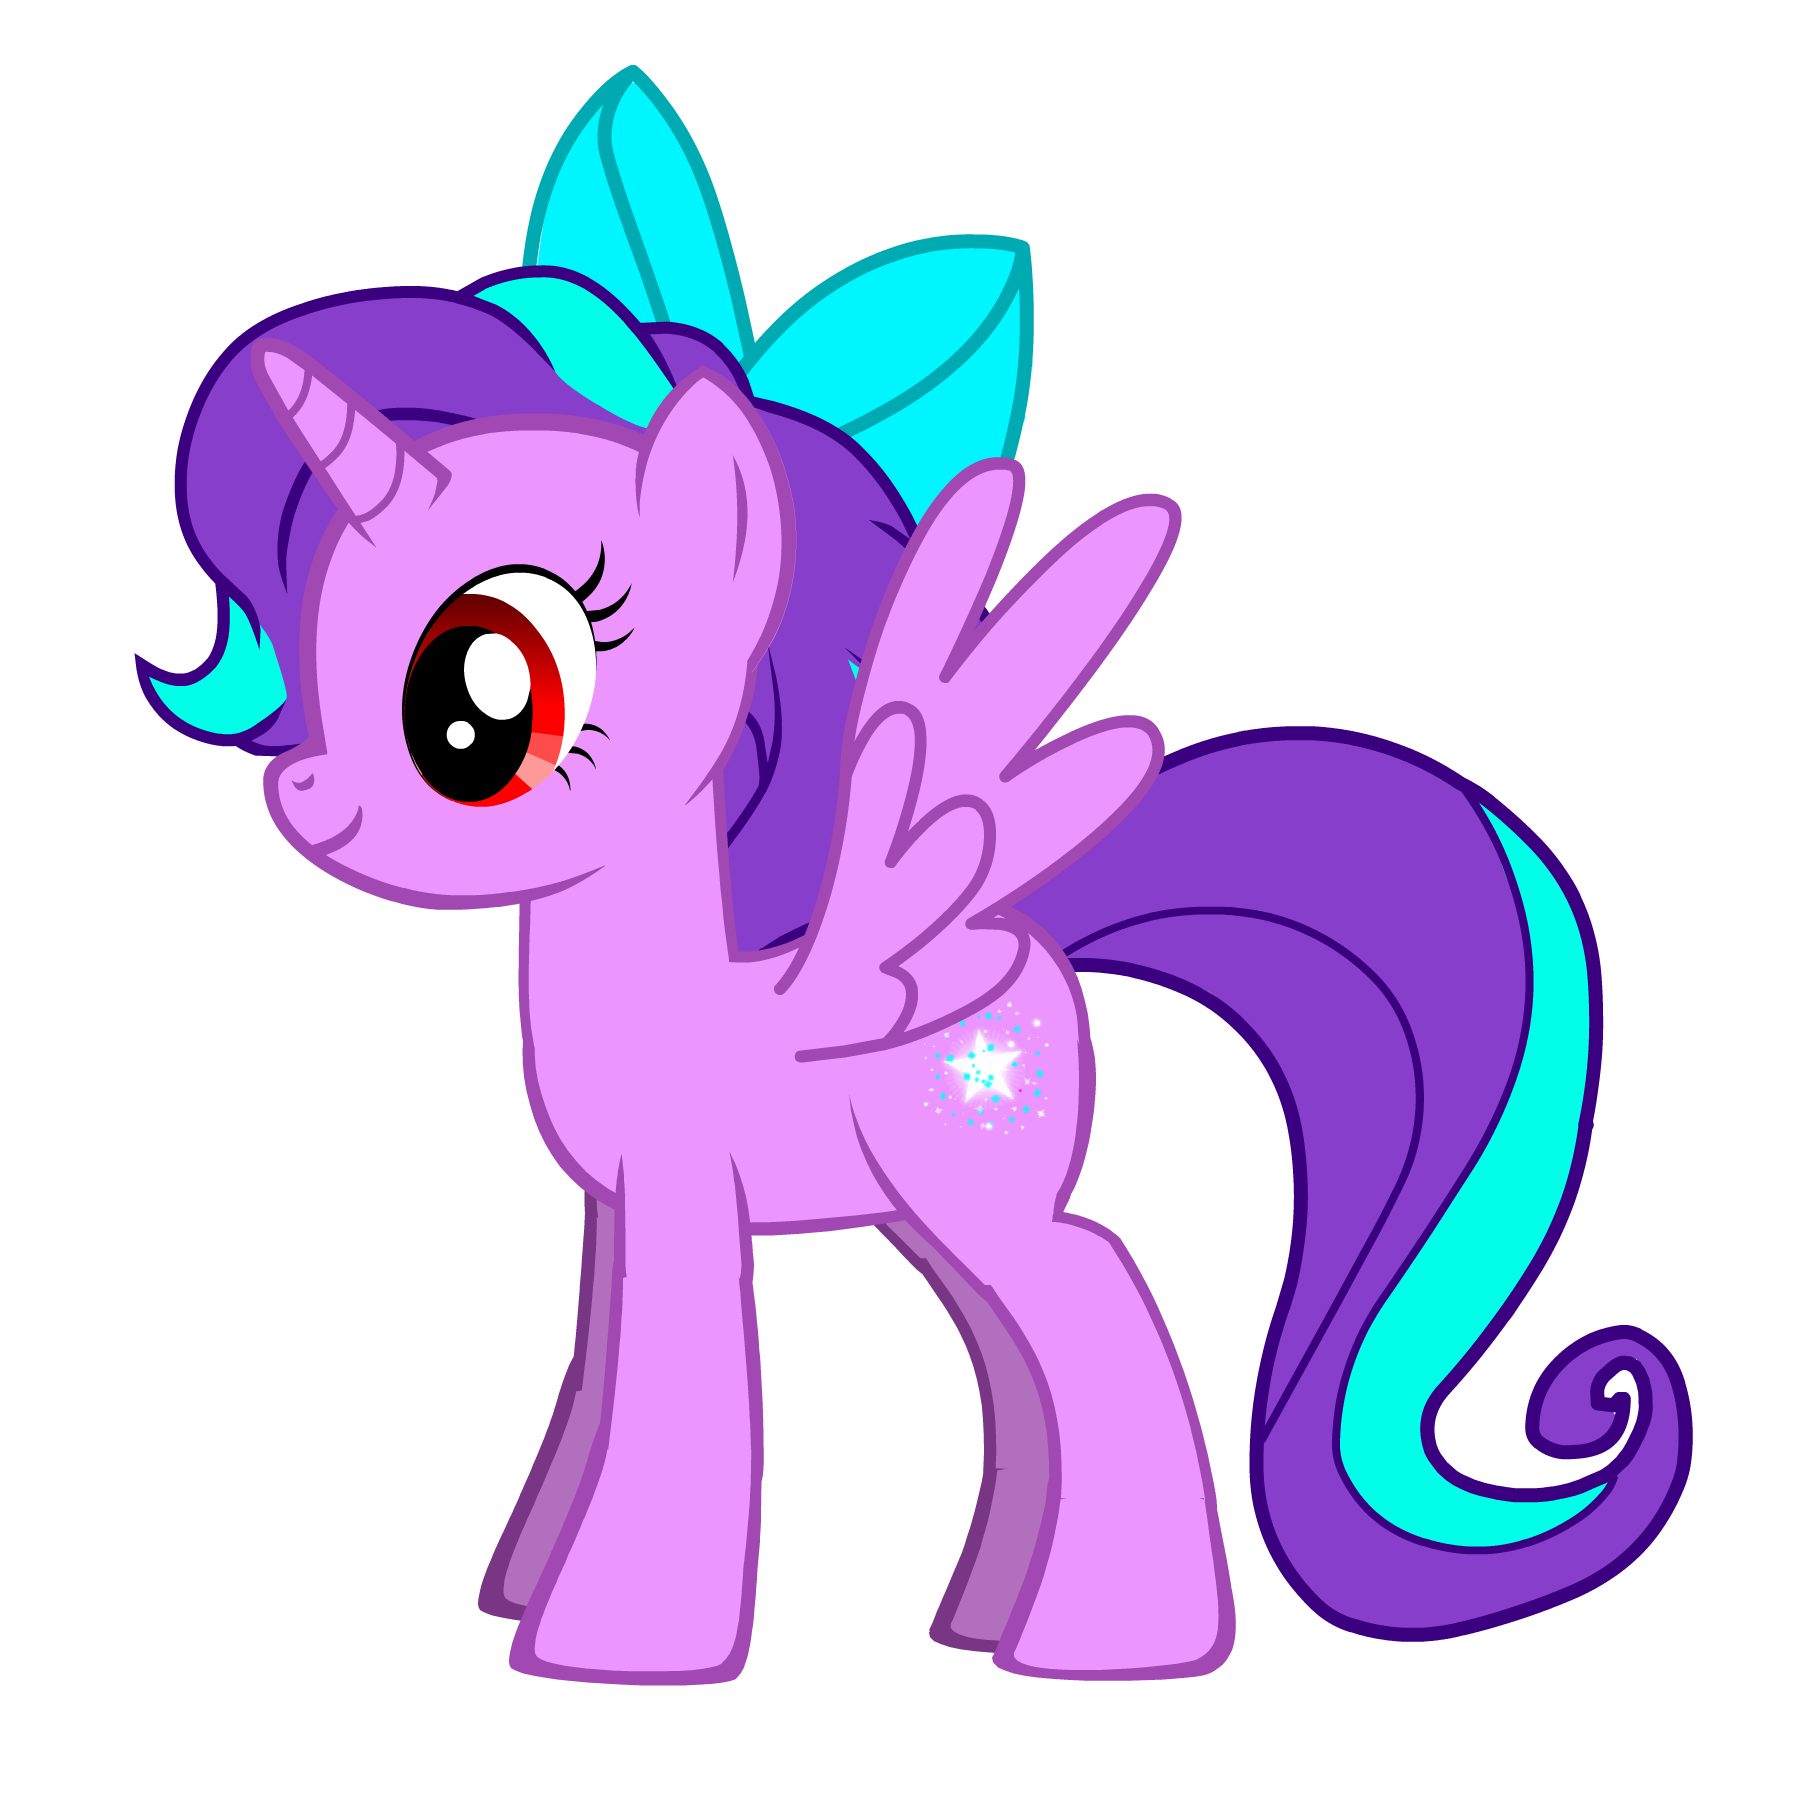 image evening starlite my little pony fim fan characters 27972207